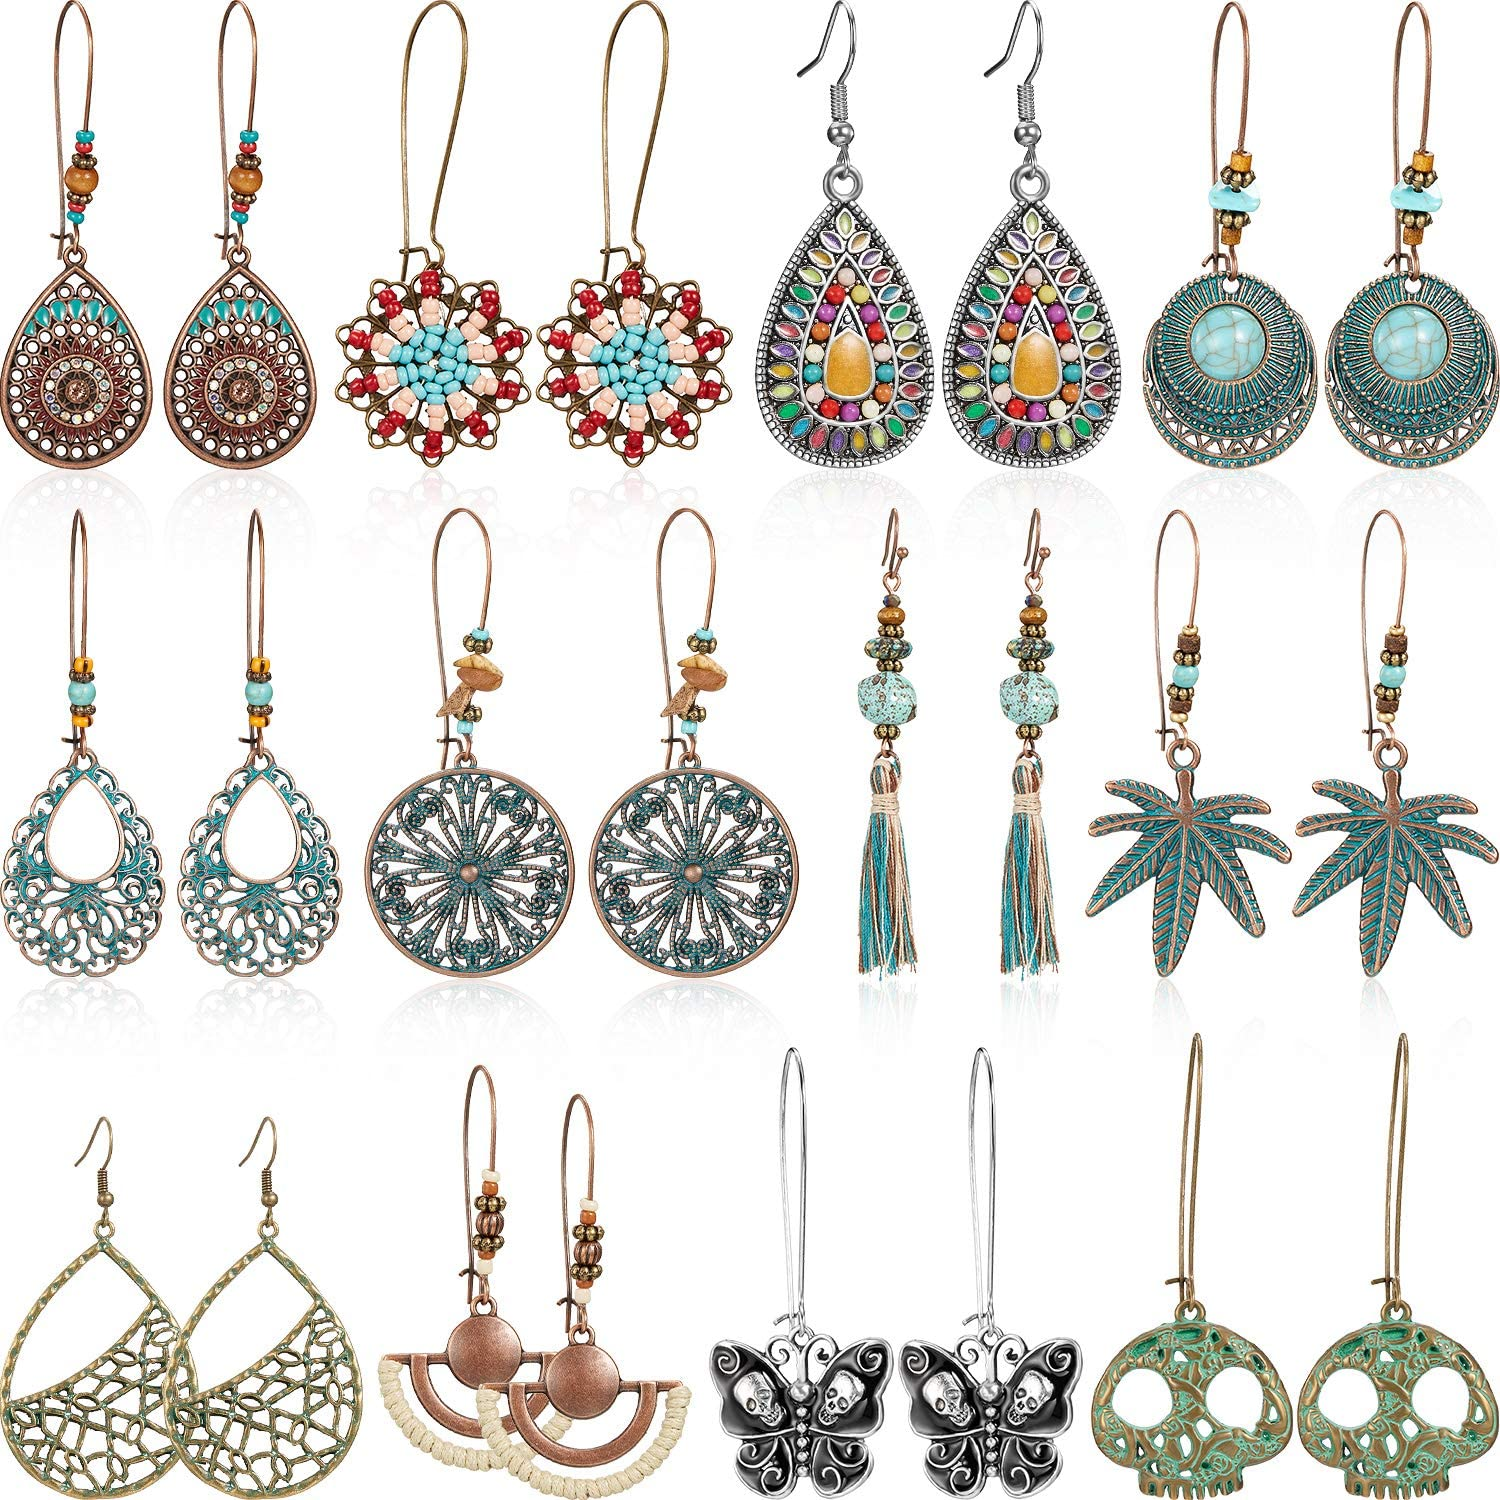 12 Pairs Bohemian Earrings Vintage Dangle Earrings Turquoise Metal Hollow Pendant Earrings Set for Women Girls (Style Set 1)